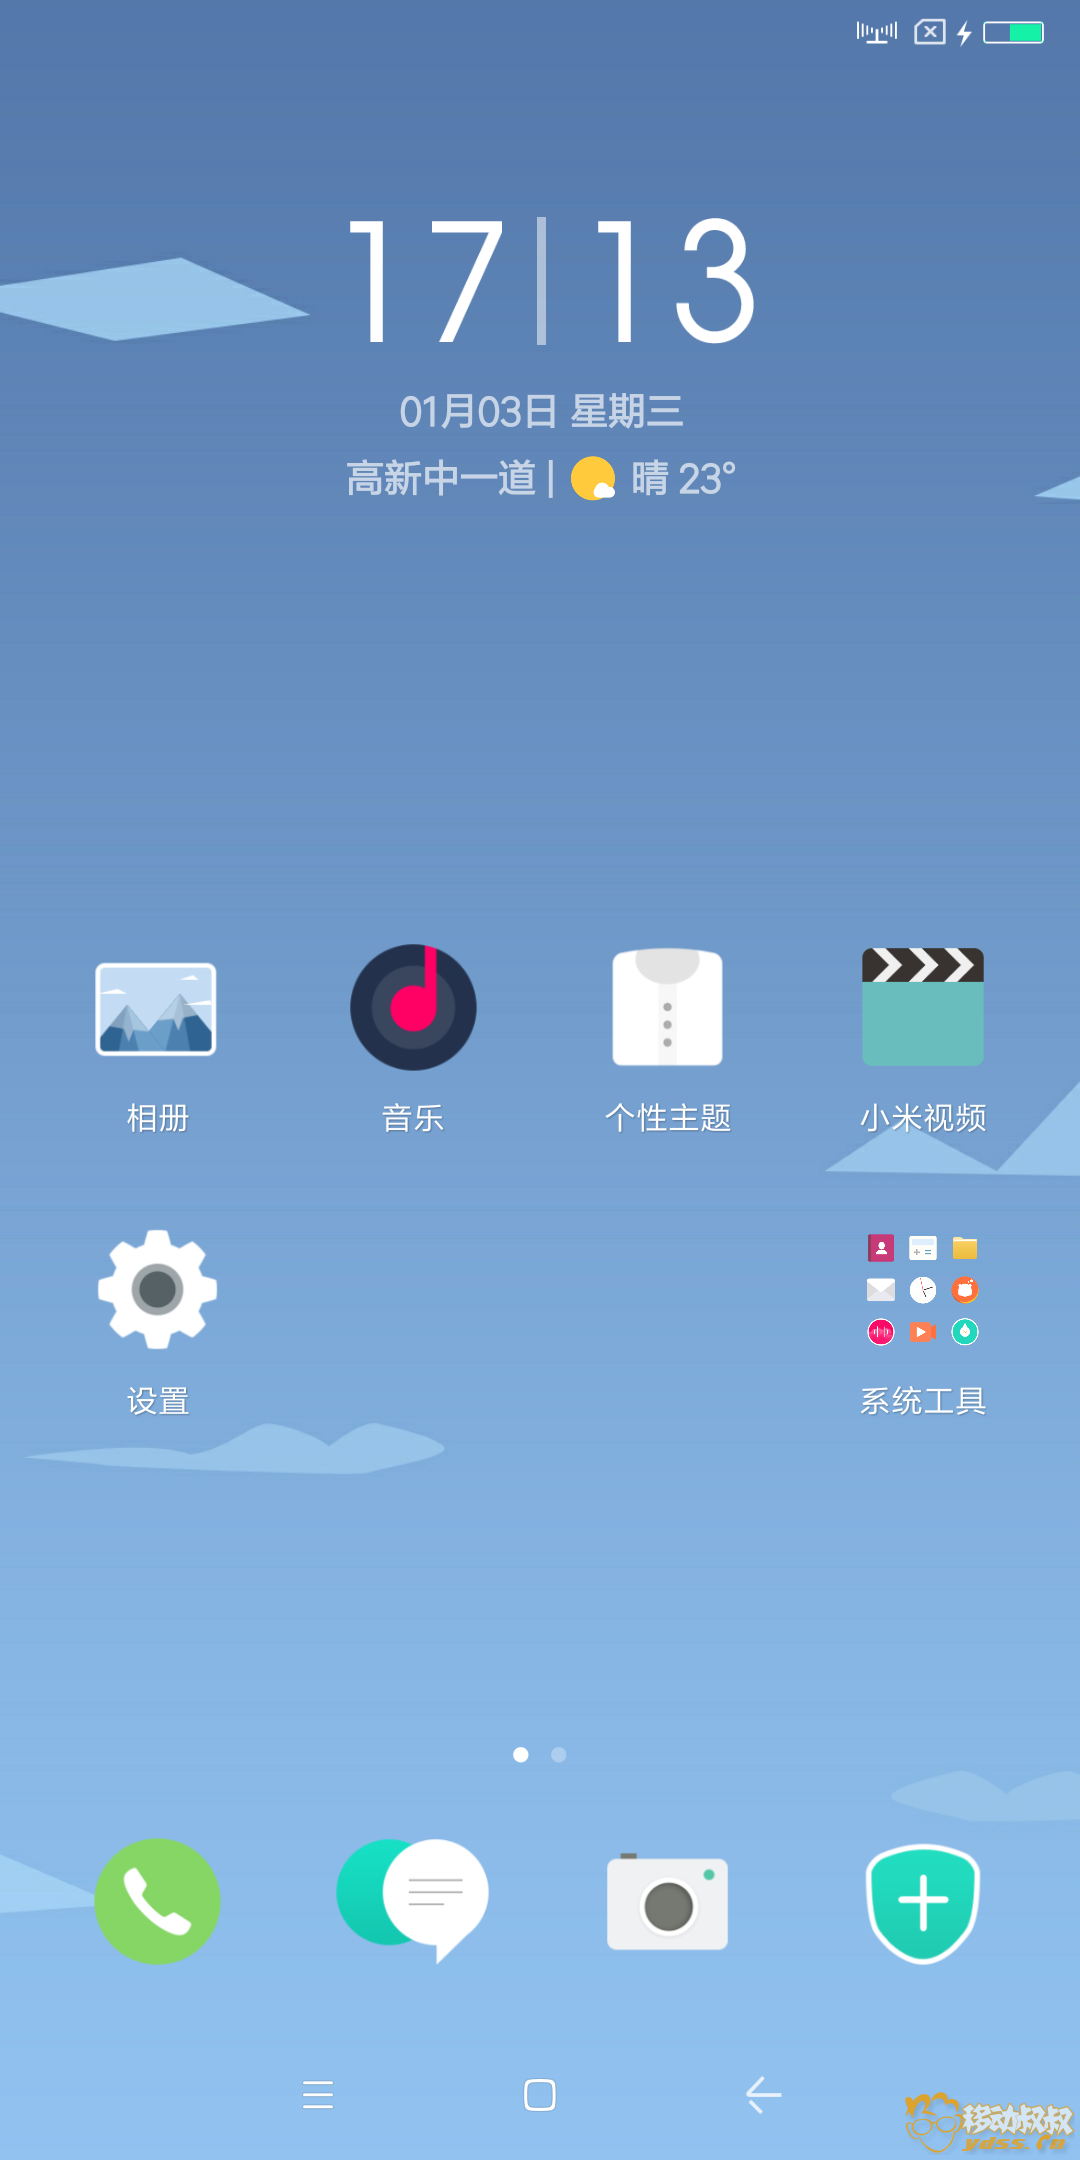 Screenshot_2018-01-03-17-13-08-153_com.miui.home[1].png